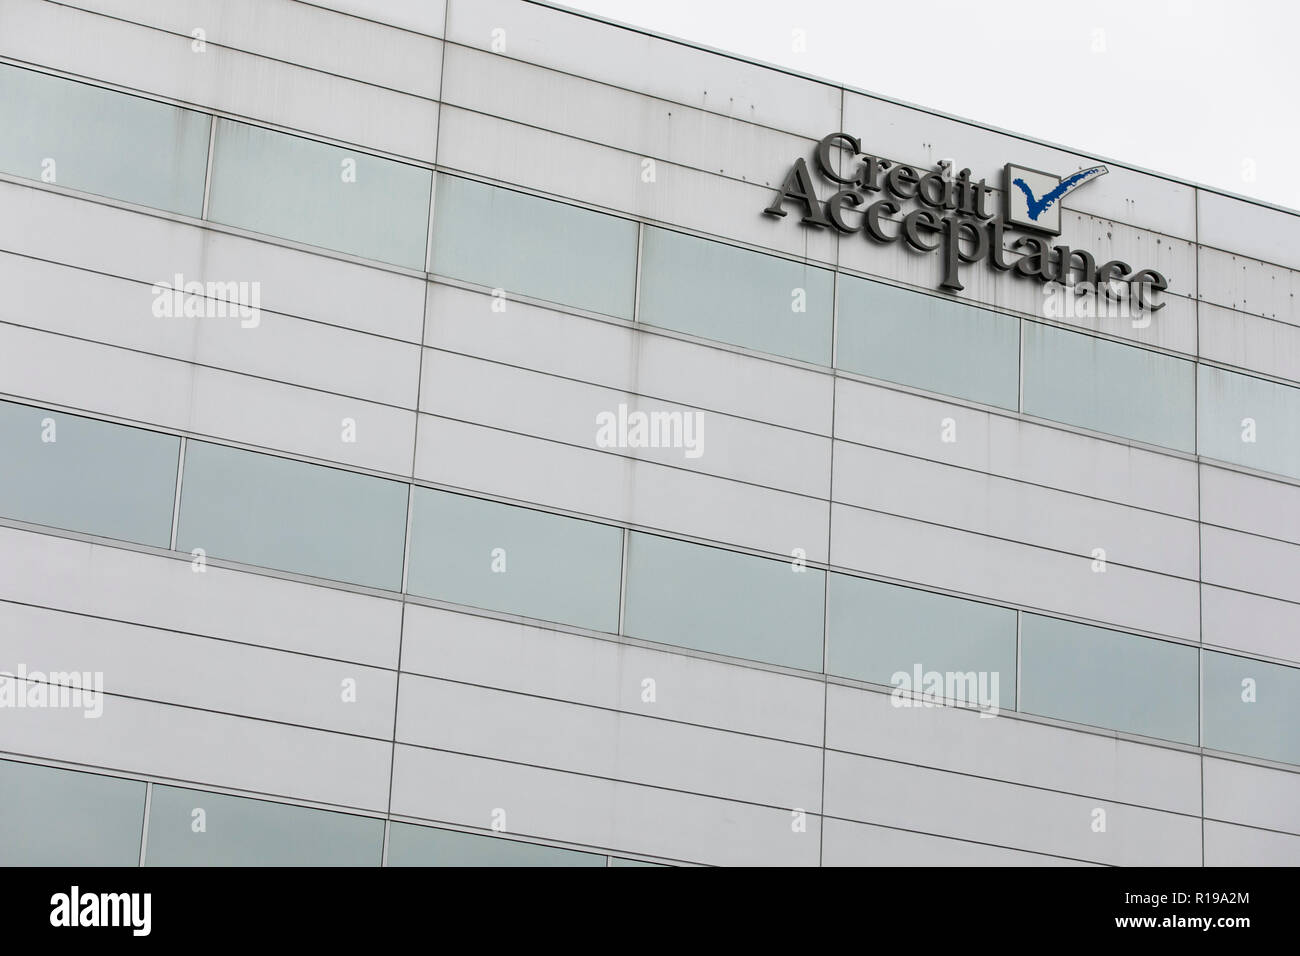 A logo sign outside of the headquarters of the Credit Acceptance Corporation in Southfield, Michigan on October 27, 2018. - Stock Image